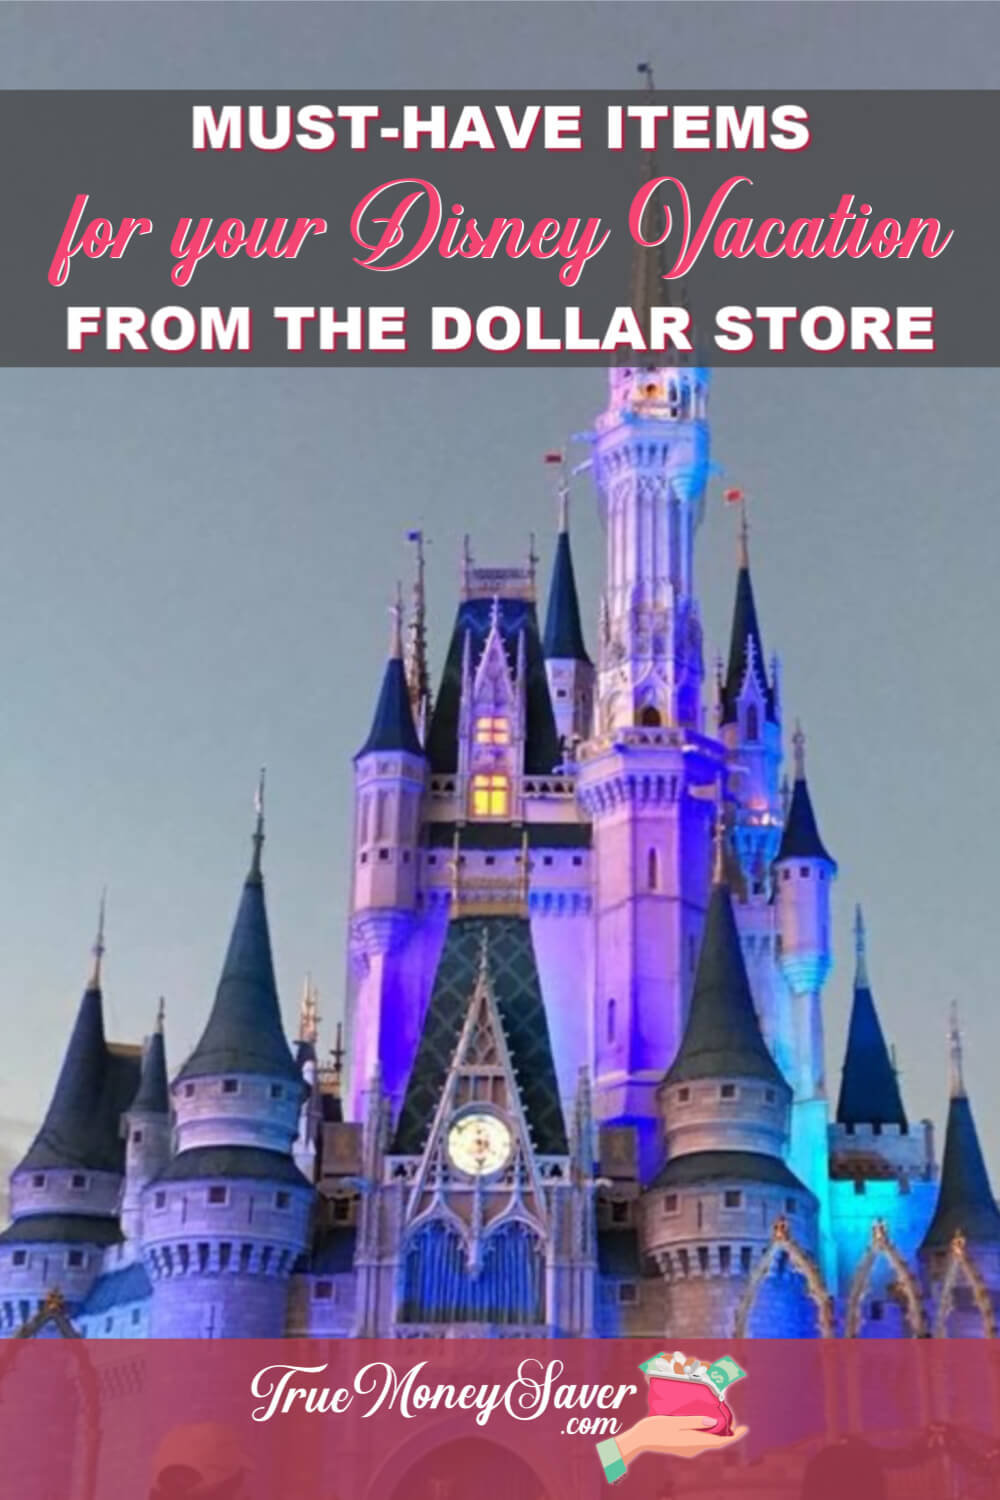 There are so many great finds at the dollar store that can help you save big on your Disney vacation! Don\'t overpay when you need them at the parks! #truecouponing #savingmoney #disney #disneyvacation